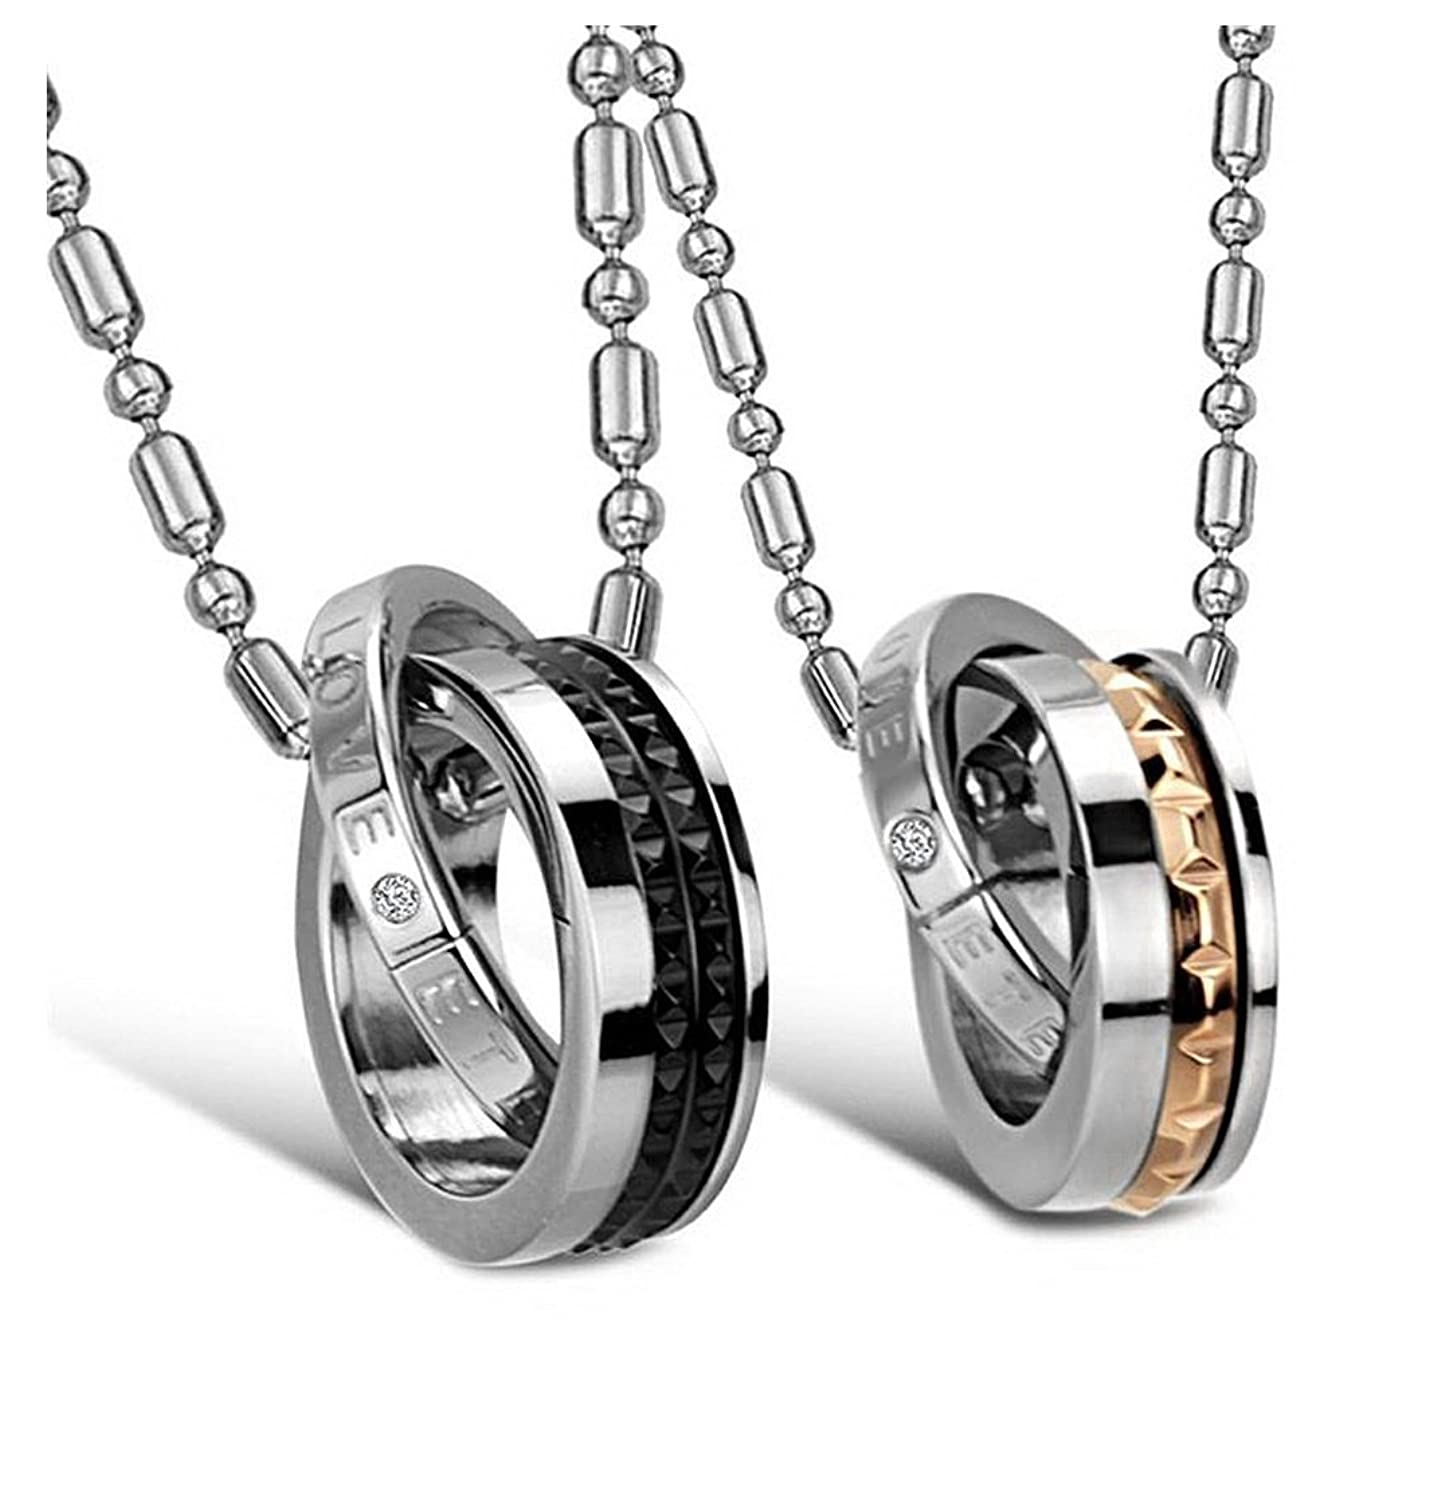 Amazon.com: His & Hers Matching Set Titanium Couple Pendant ...